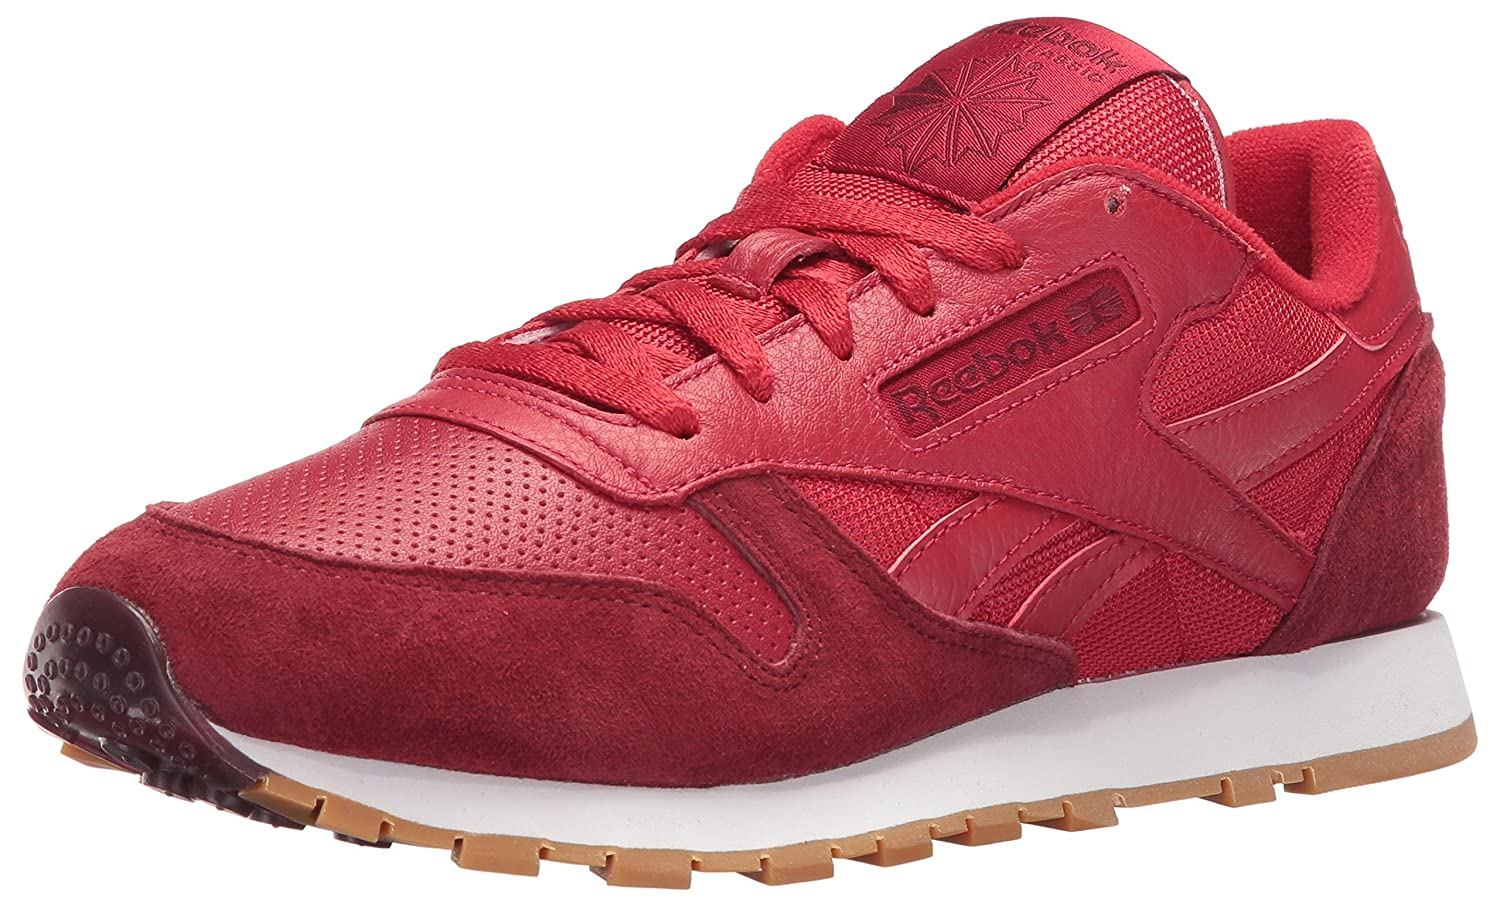 Reebok Women's CL Leather Spp Fashion Sneaker B01KTZ6XMO 10 B(M) US|Flash Red/Merlot/White/Gum